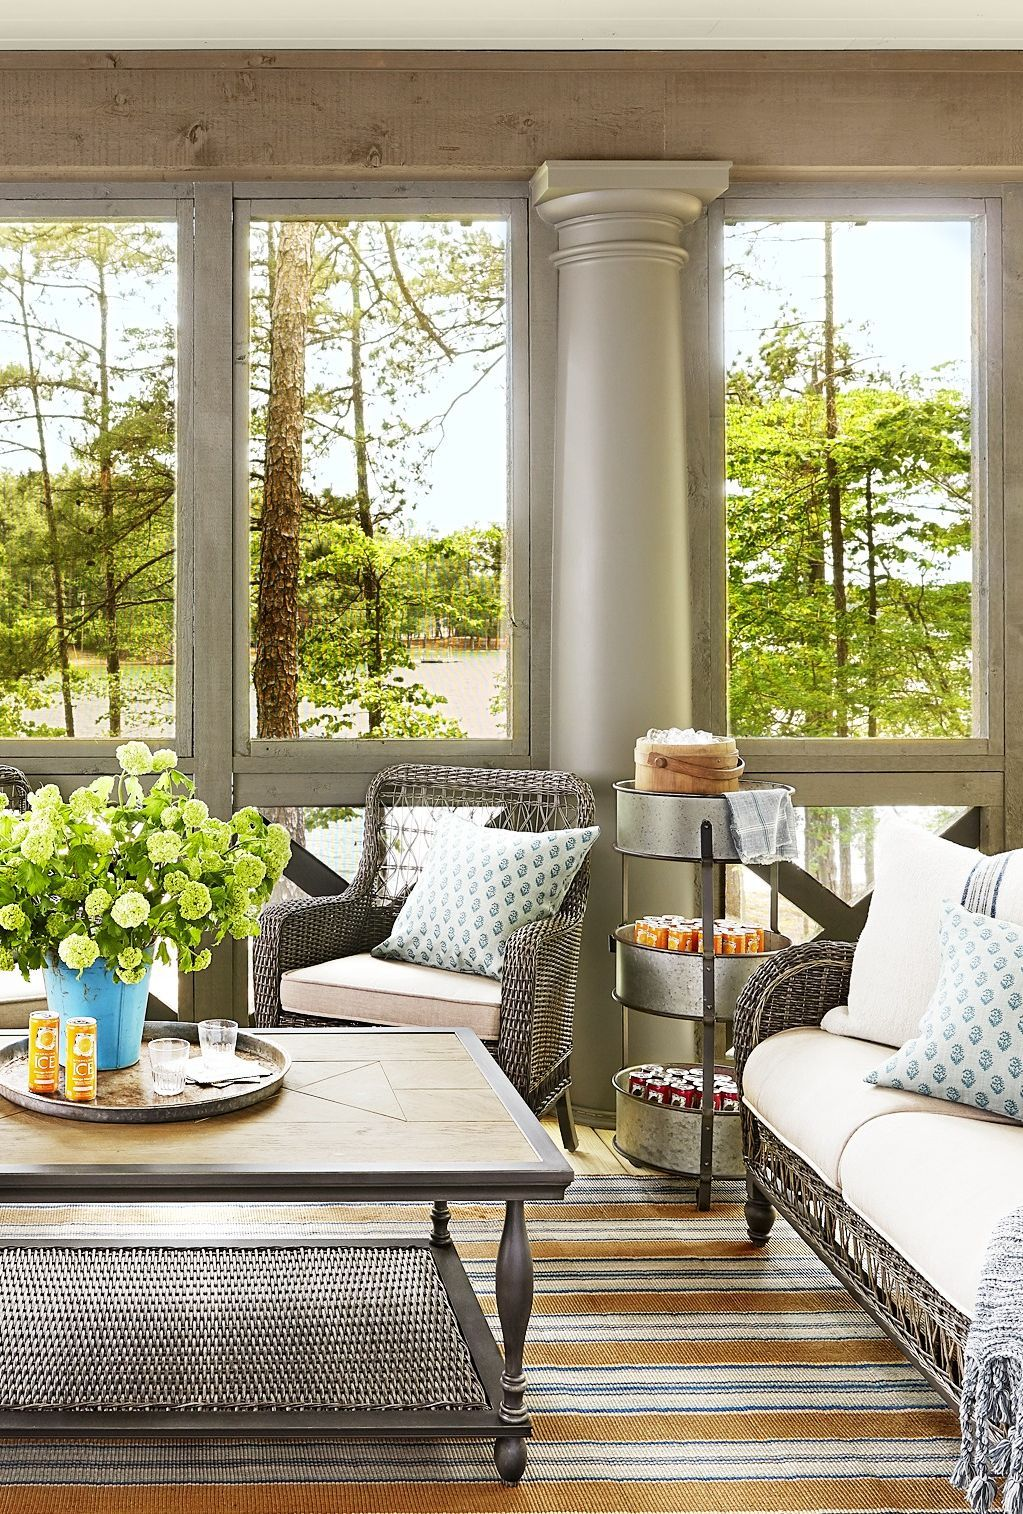 Home Additions Sunroom Decorating Four Seasons Room: 20 Sunroom Decorating Ideas That'll Brighten Your Space